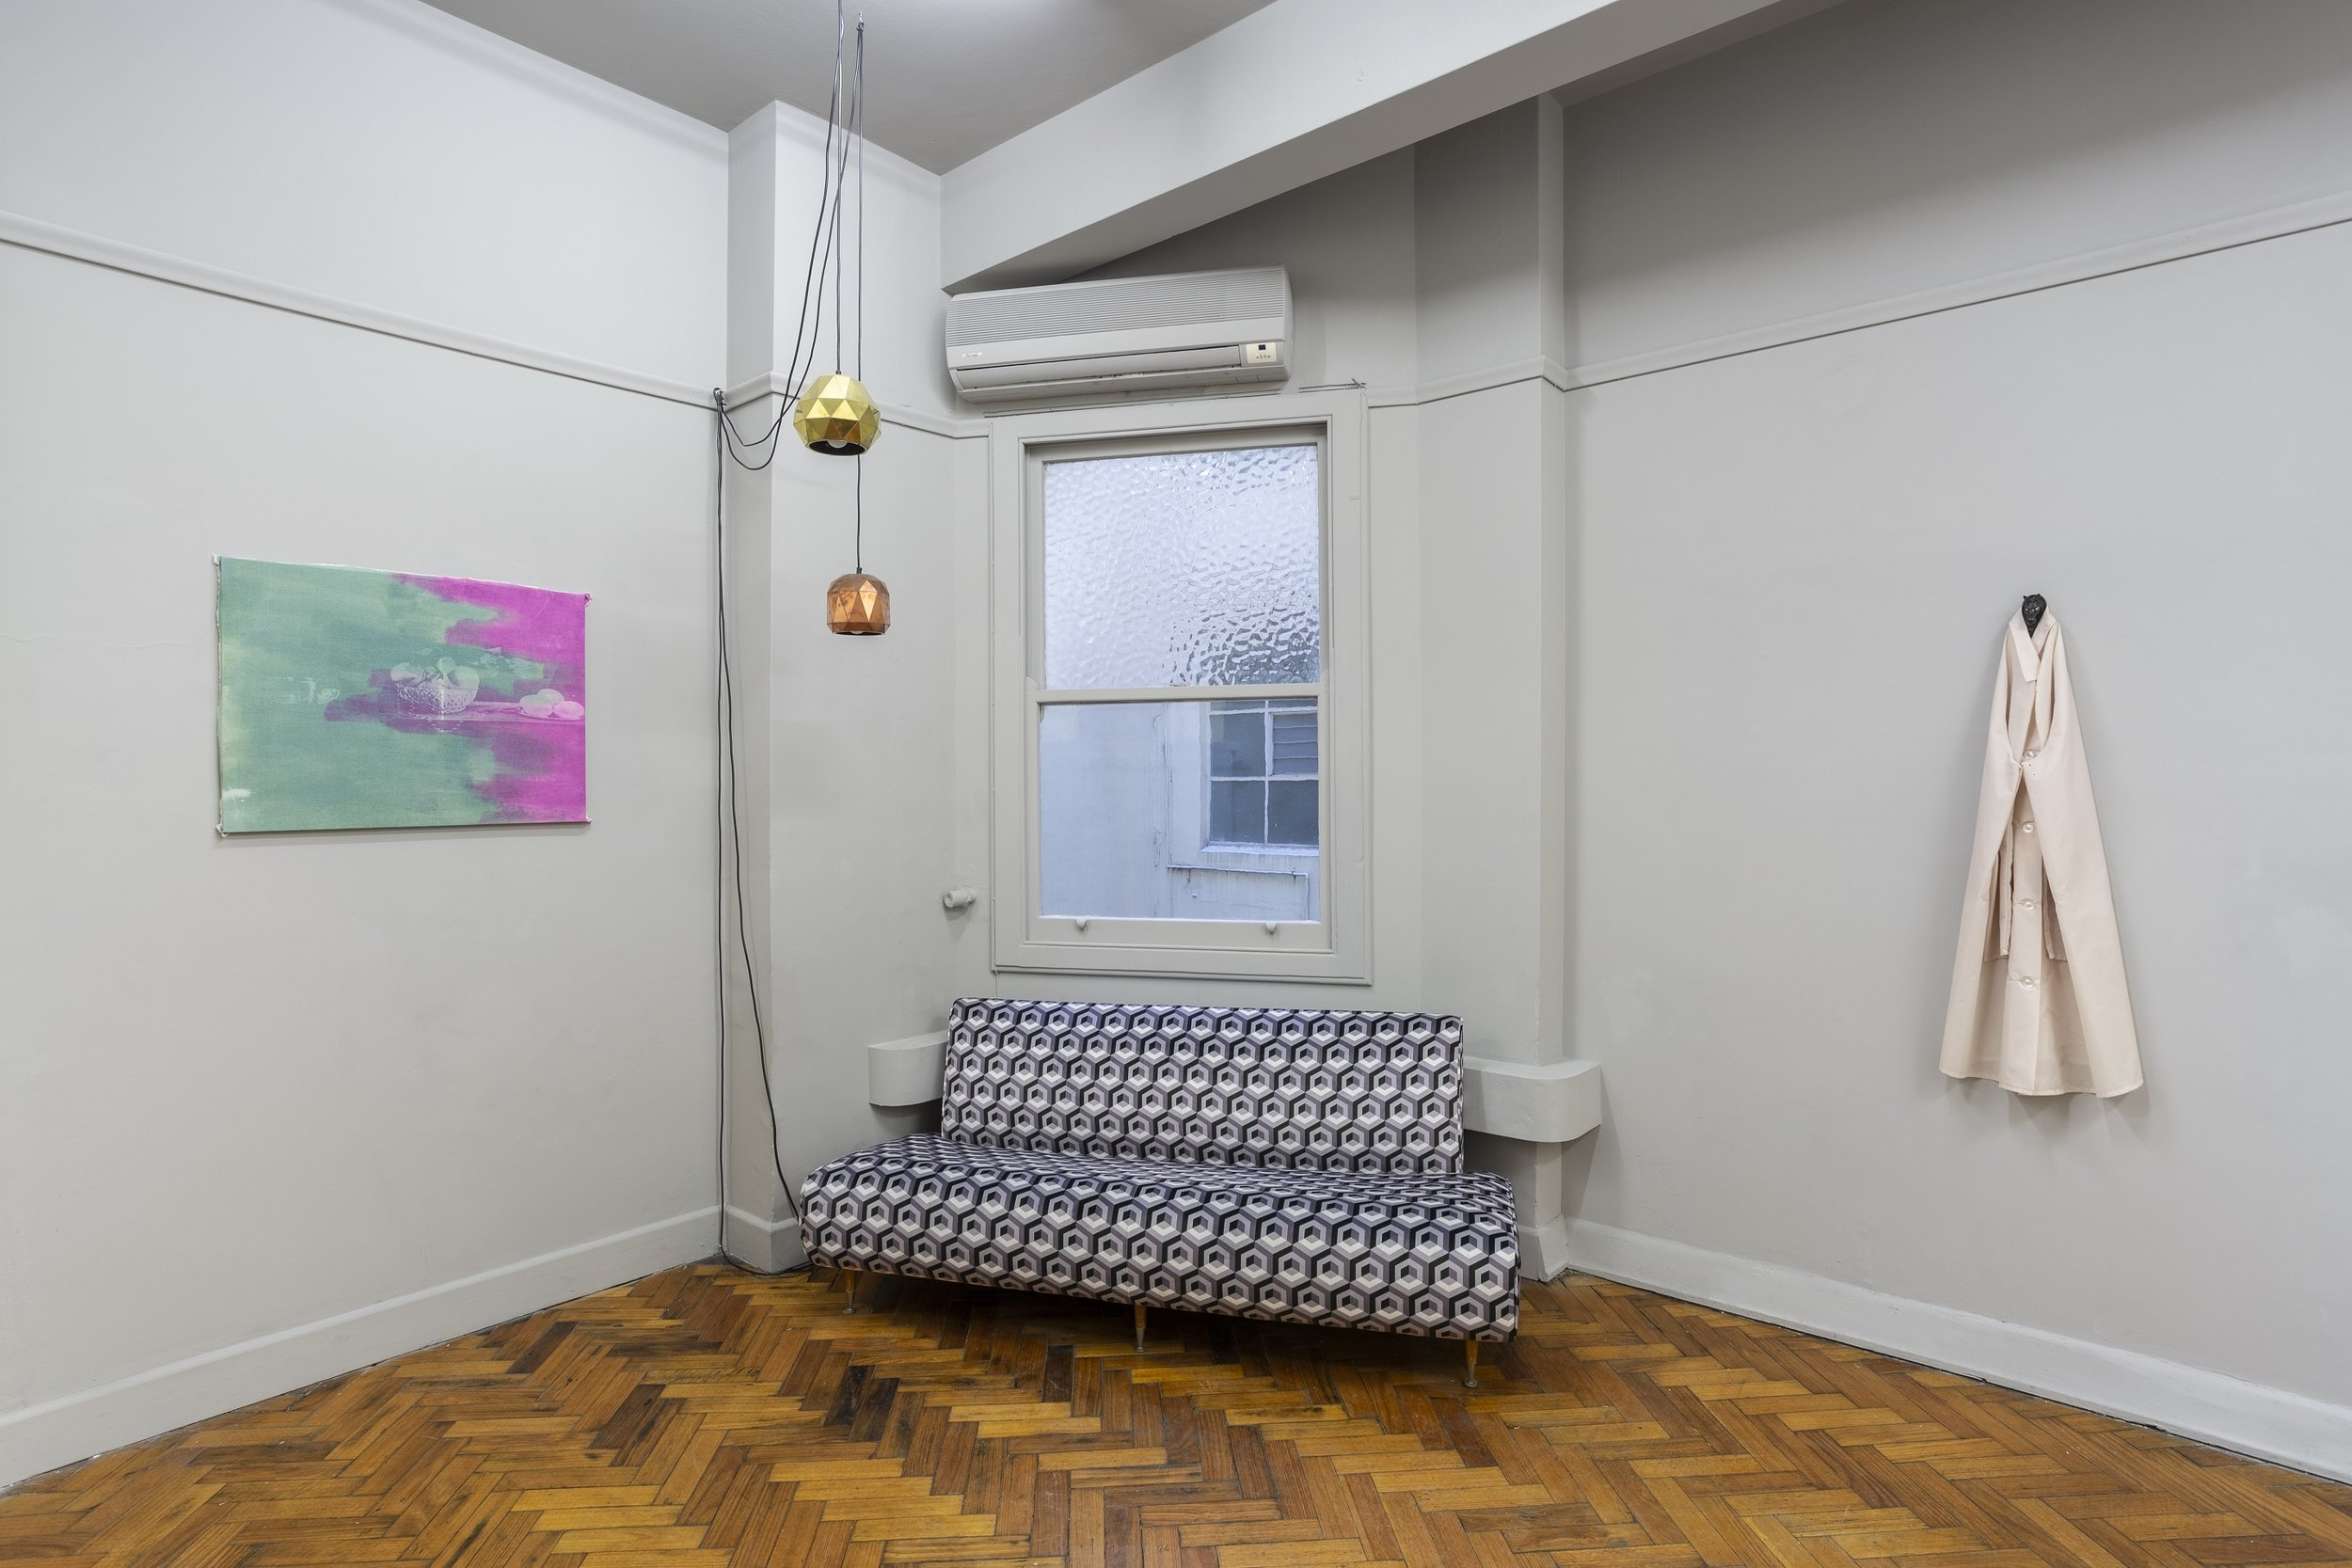 Jeremy Eaton, The Enigma Code, 2018. Installation view